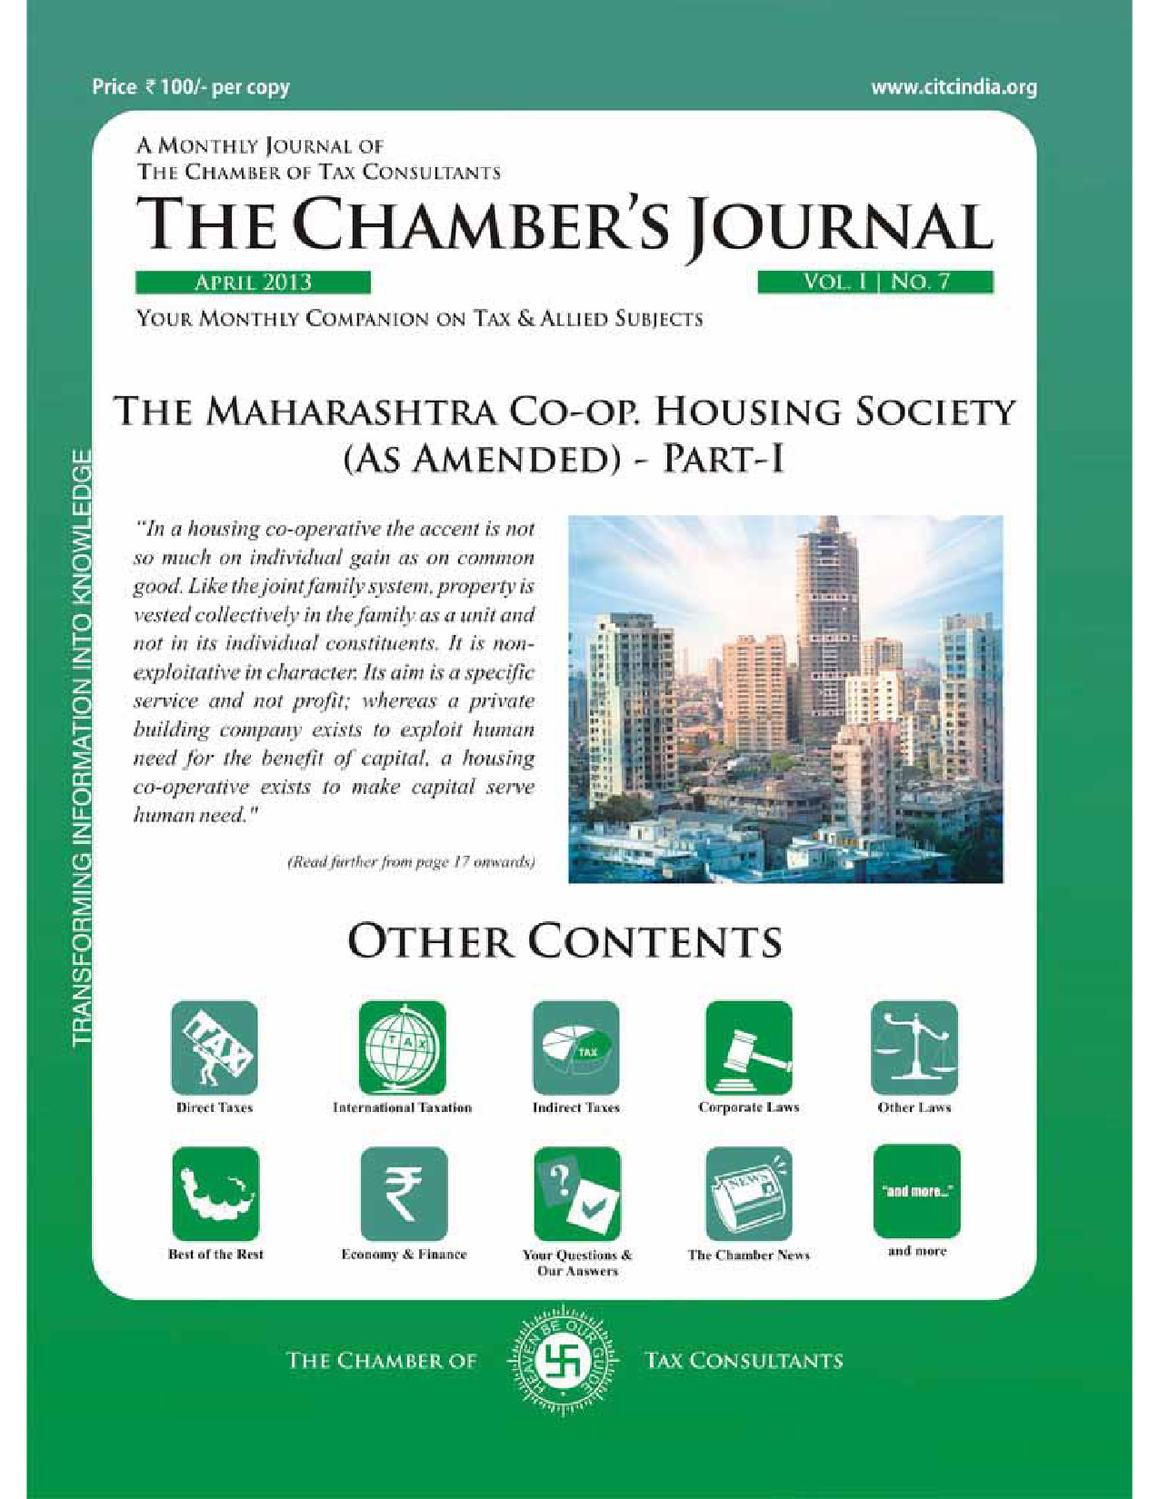 the chamber's journal april 2013 by sahil bhagat - issuu